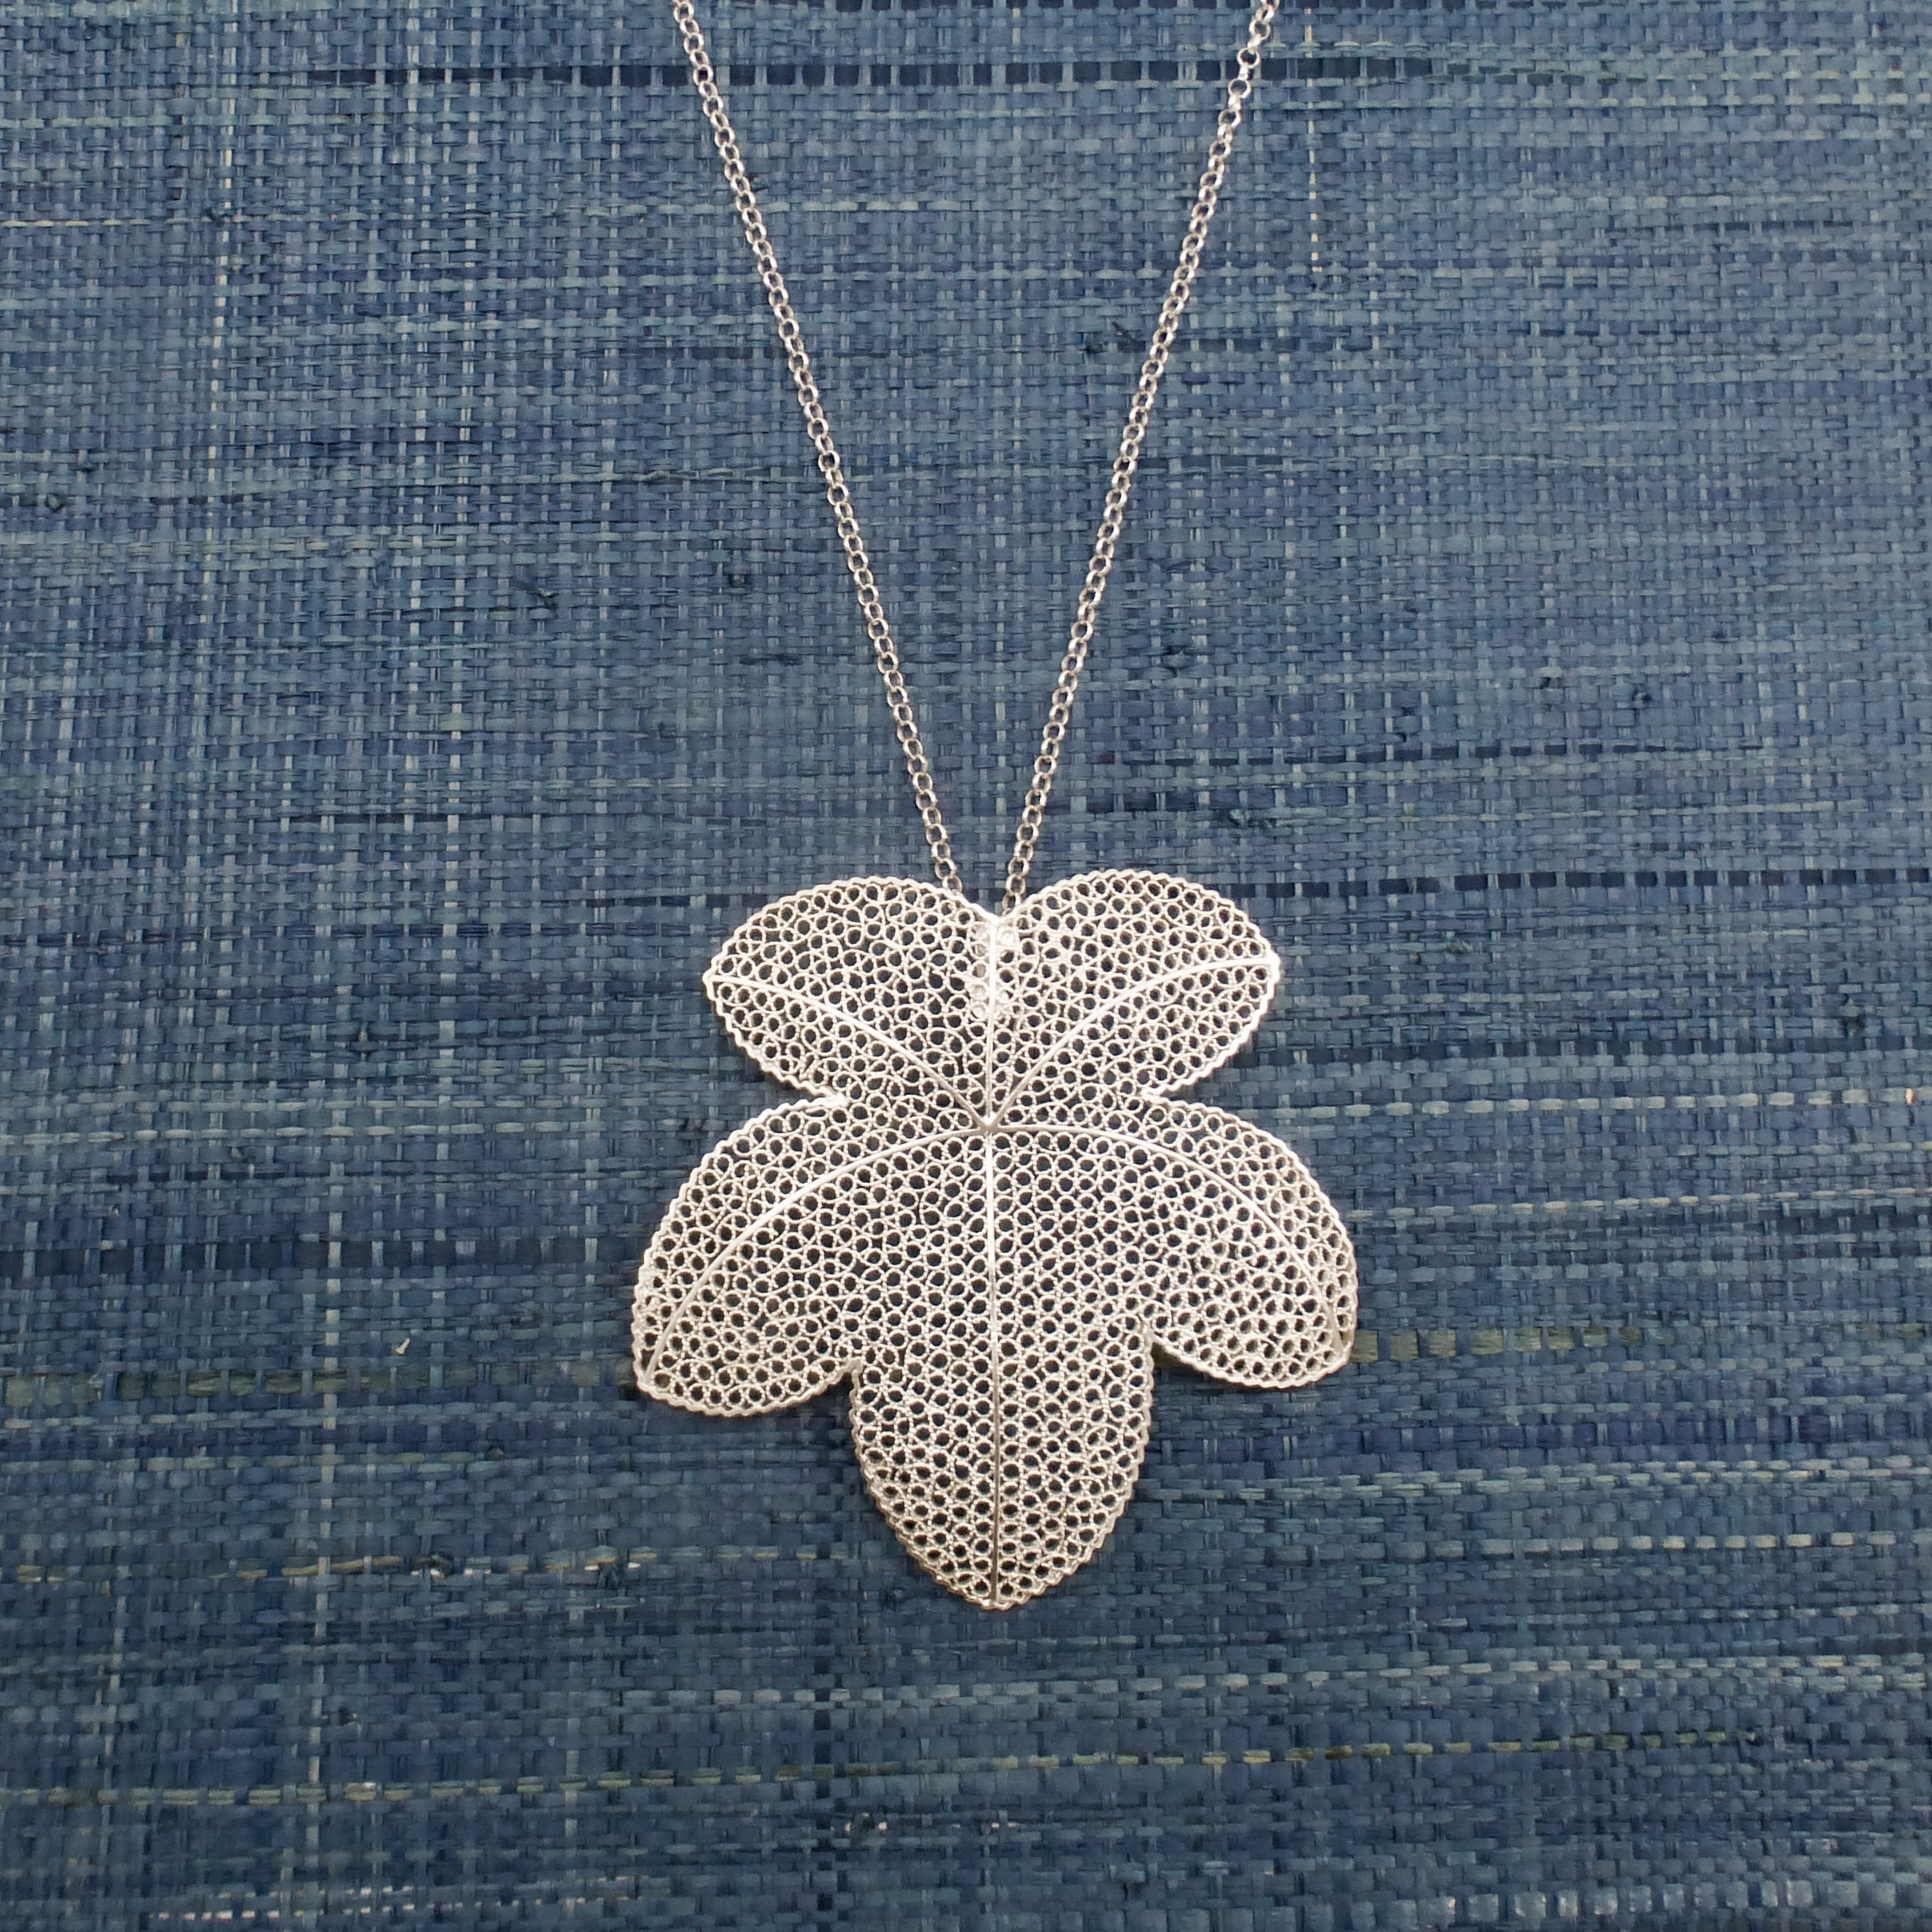 Grape leaf pendant silver filigree style wise trend foolishstyle silver filigree grape leaf pendant aloadofball Image collections